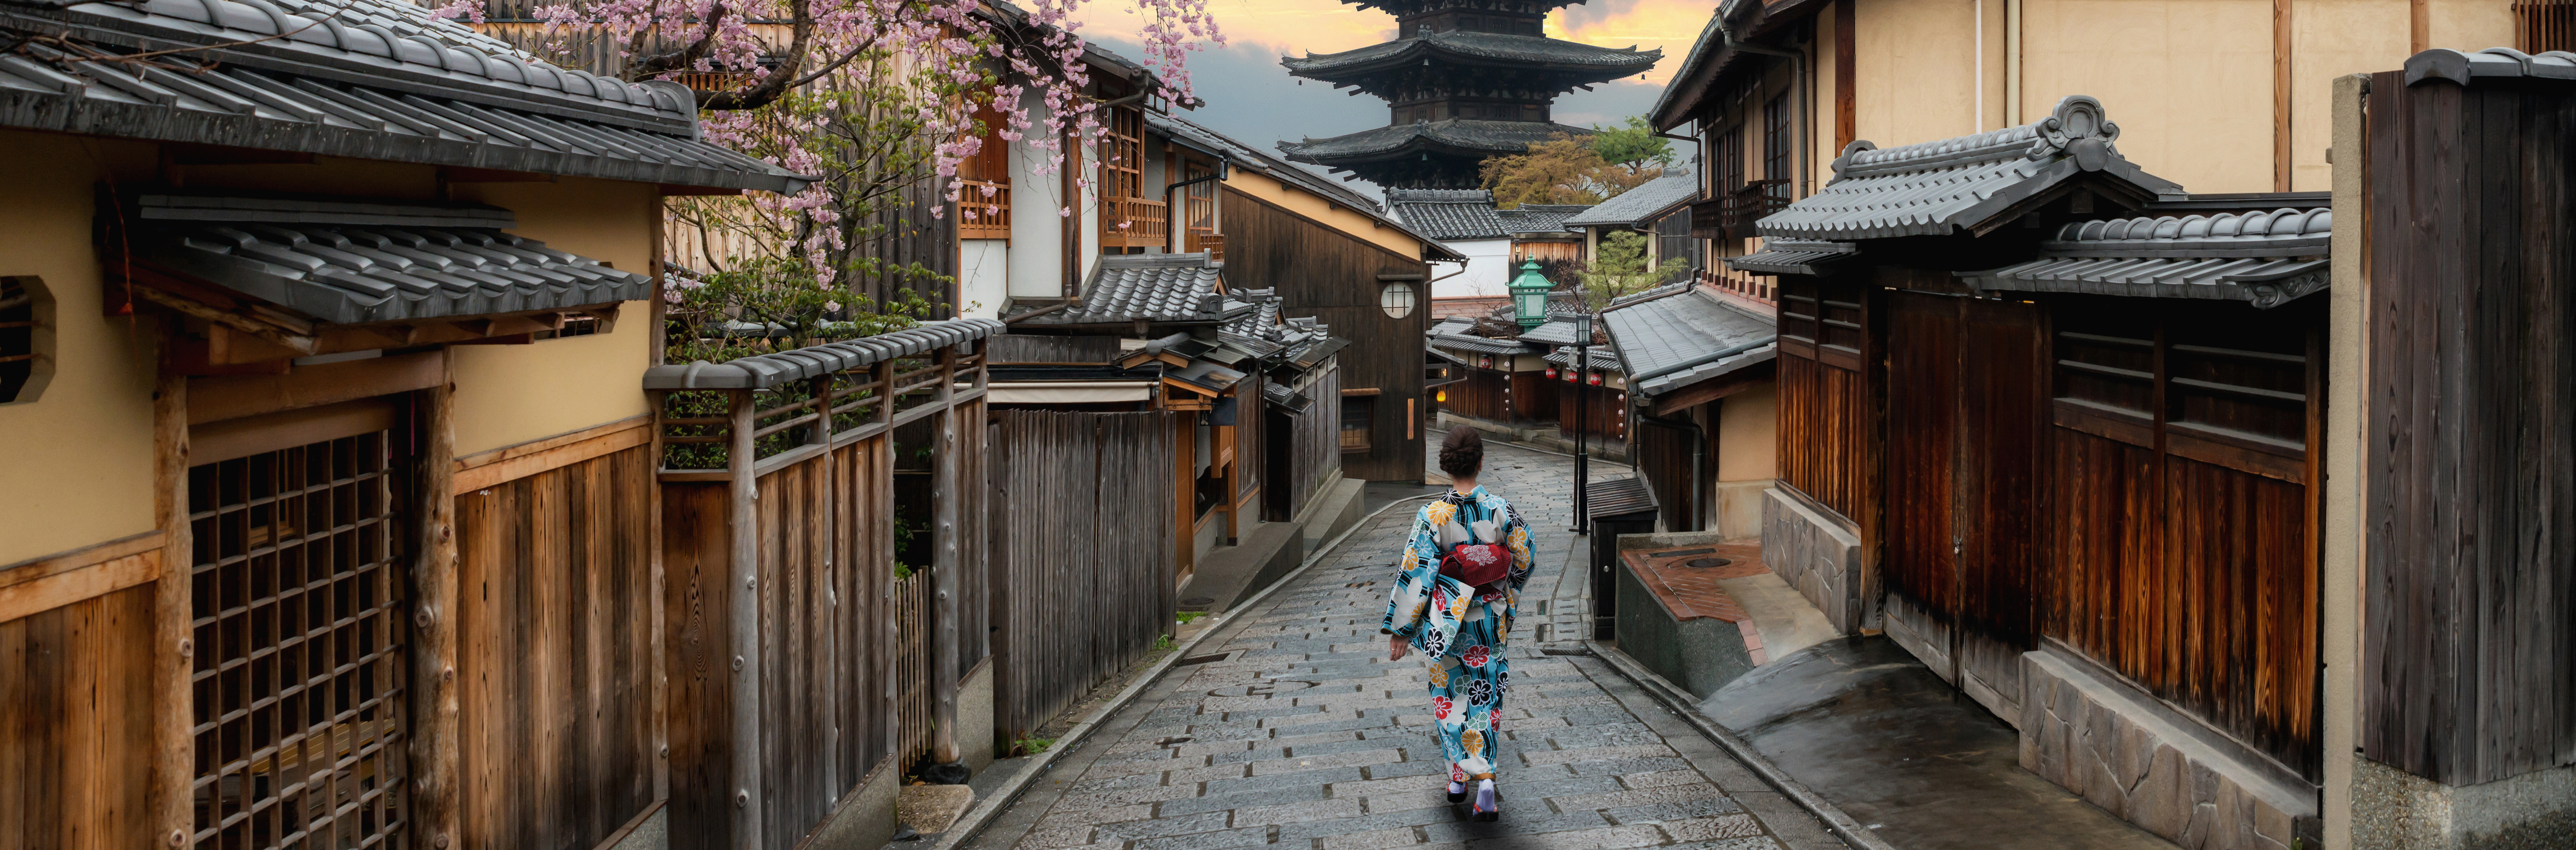 Cropped japan  kyoto   asian woman wearing traditional japanese kimono